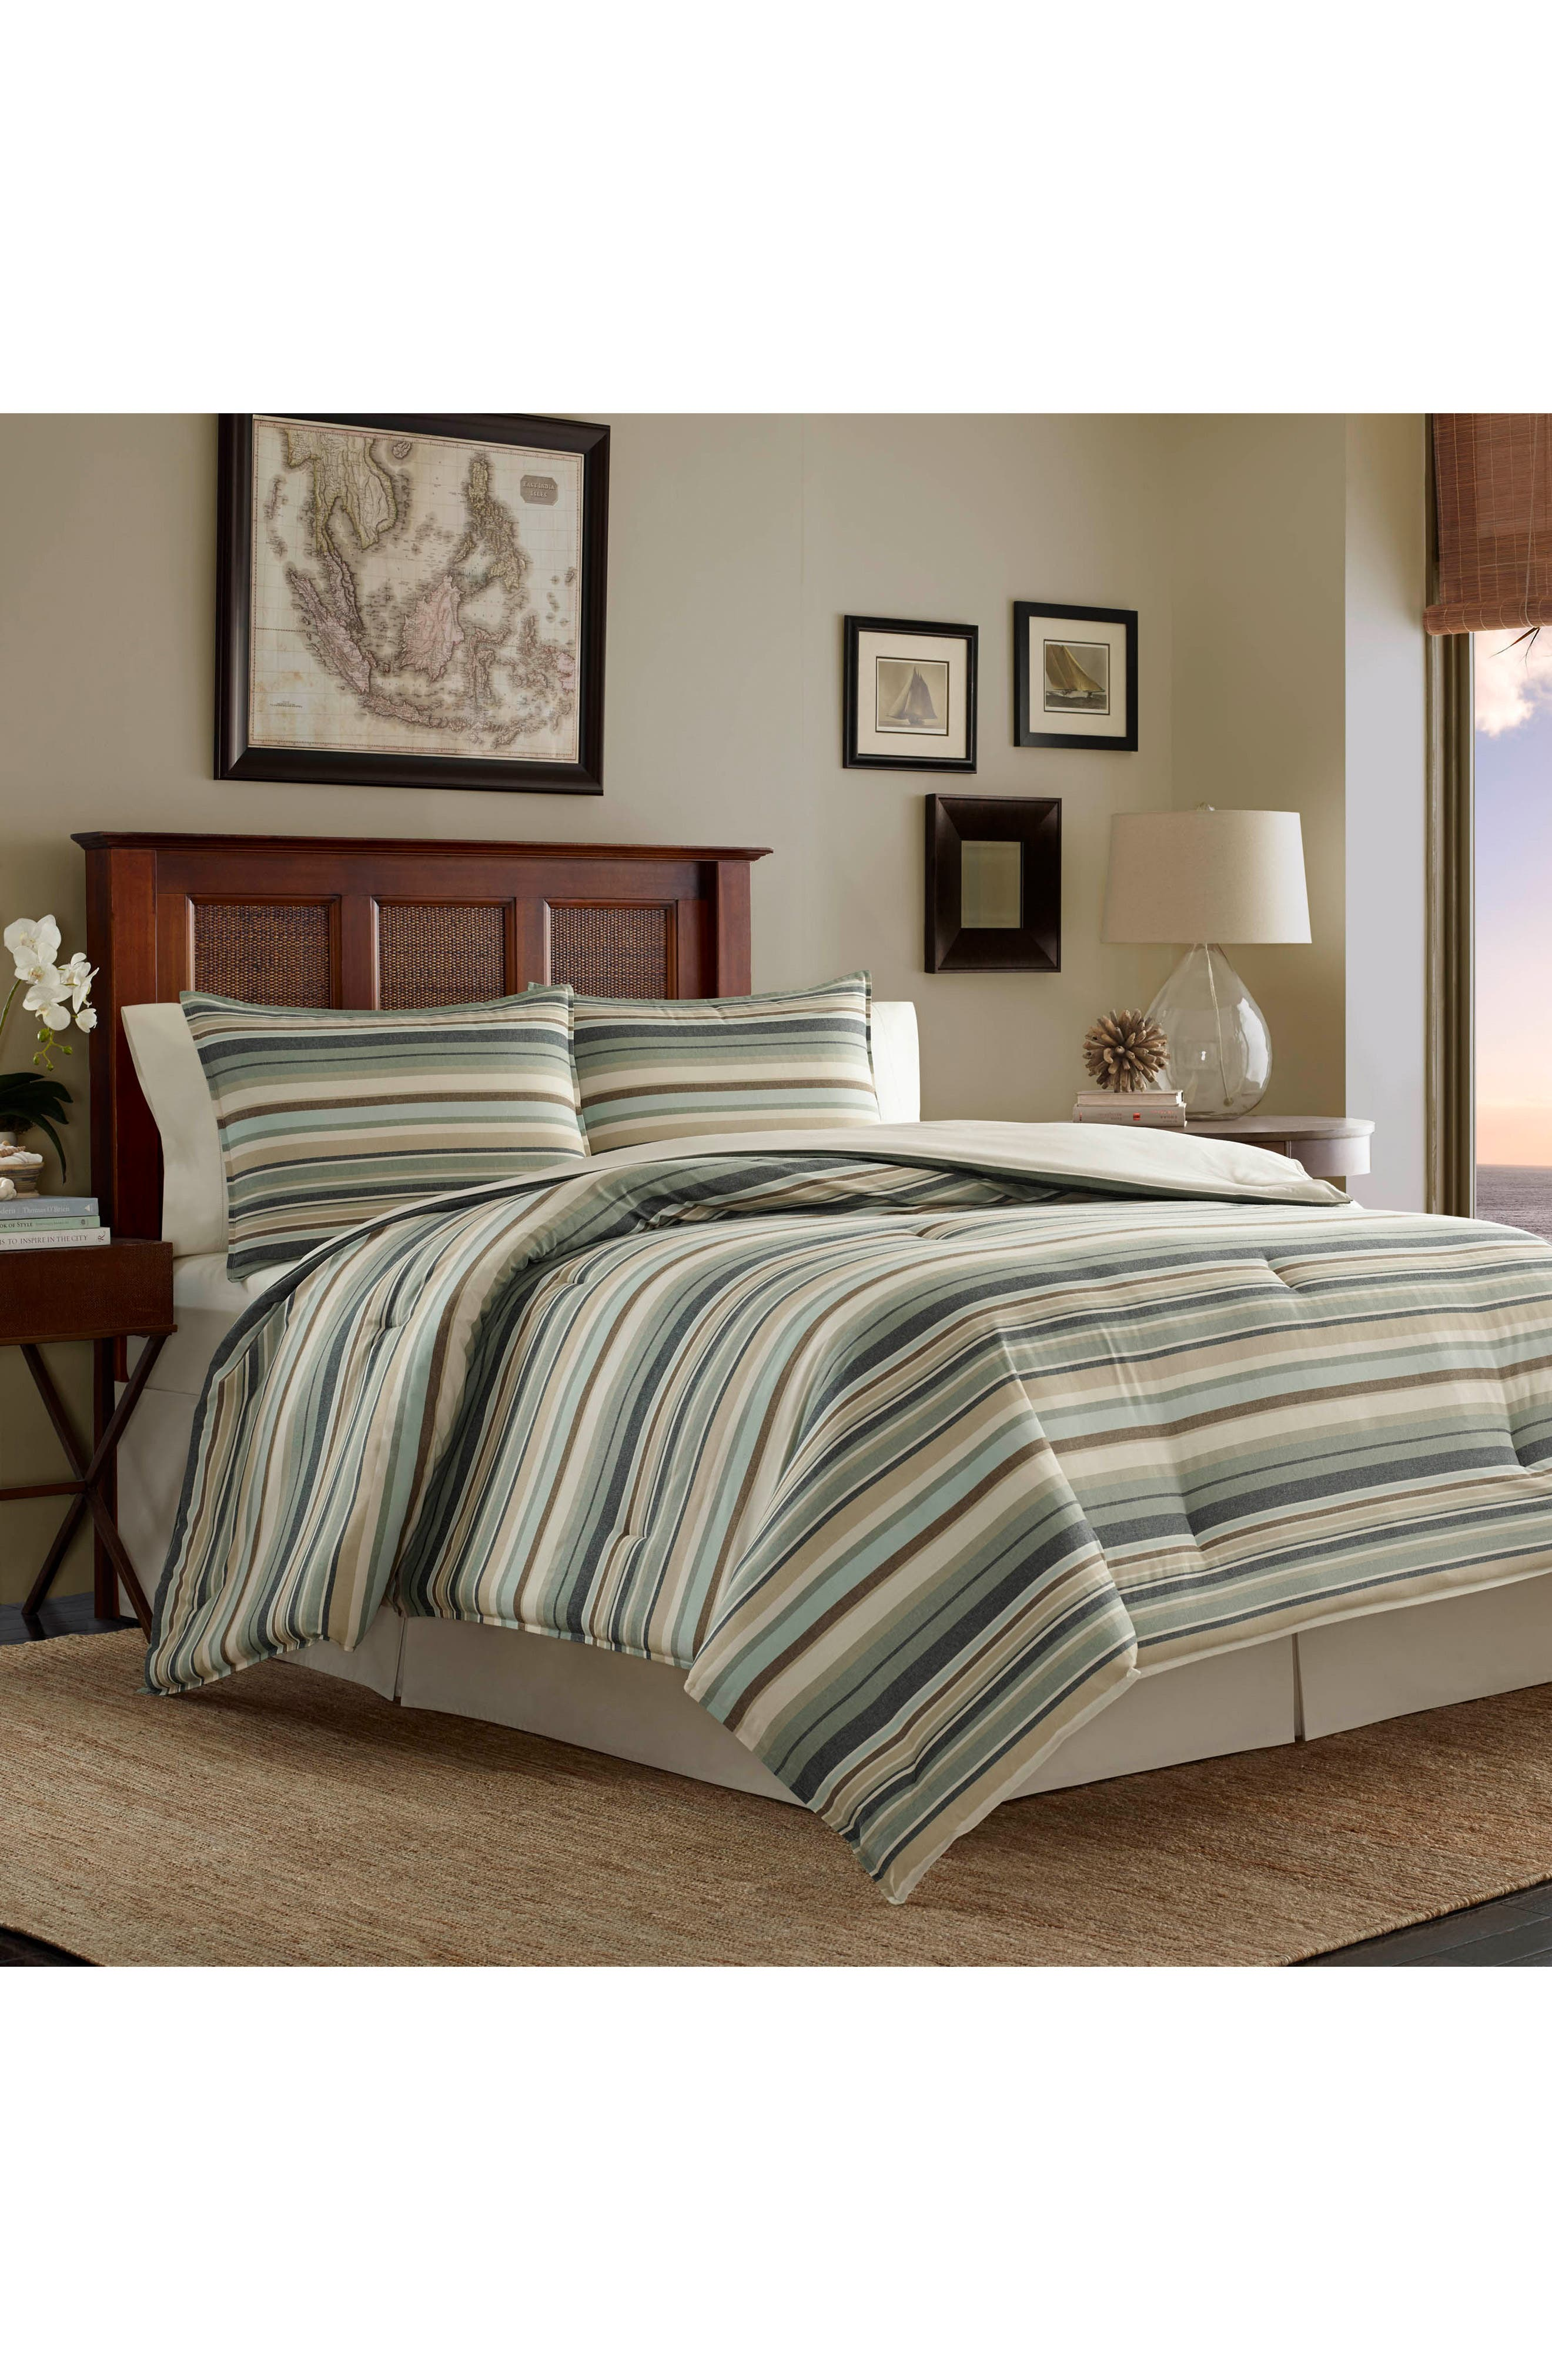 Stripe Canvas Duvet Cover & Sham Set,                         Main,                         color, Green/ Multi